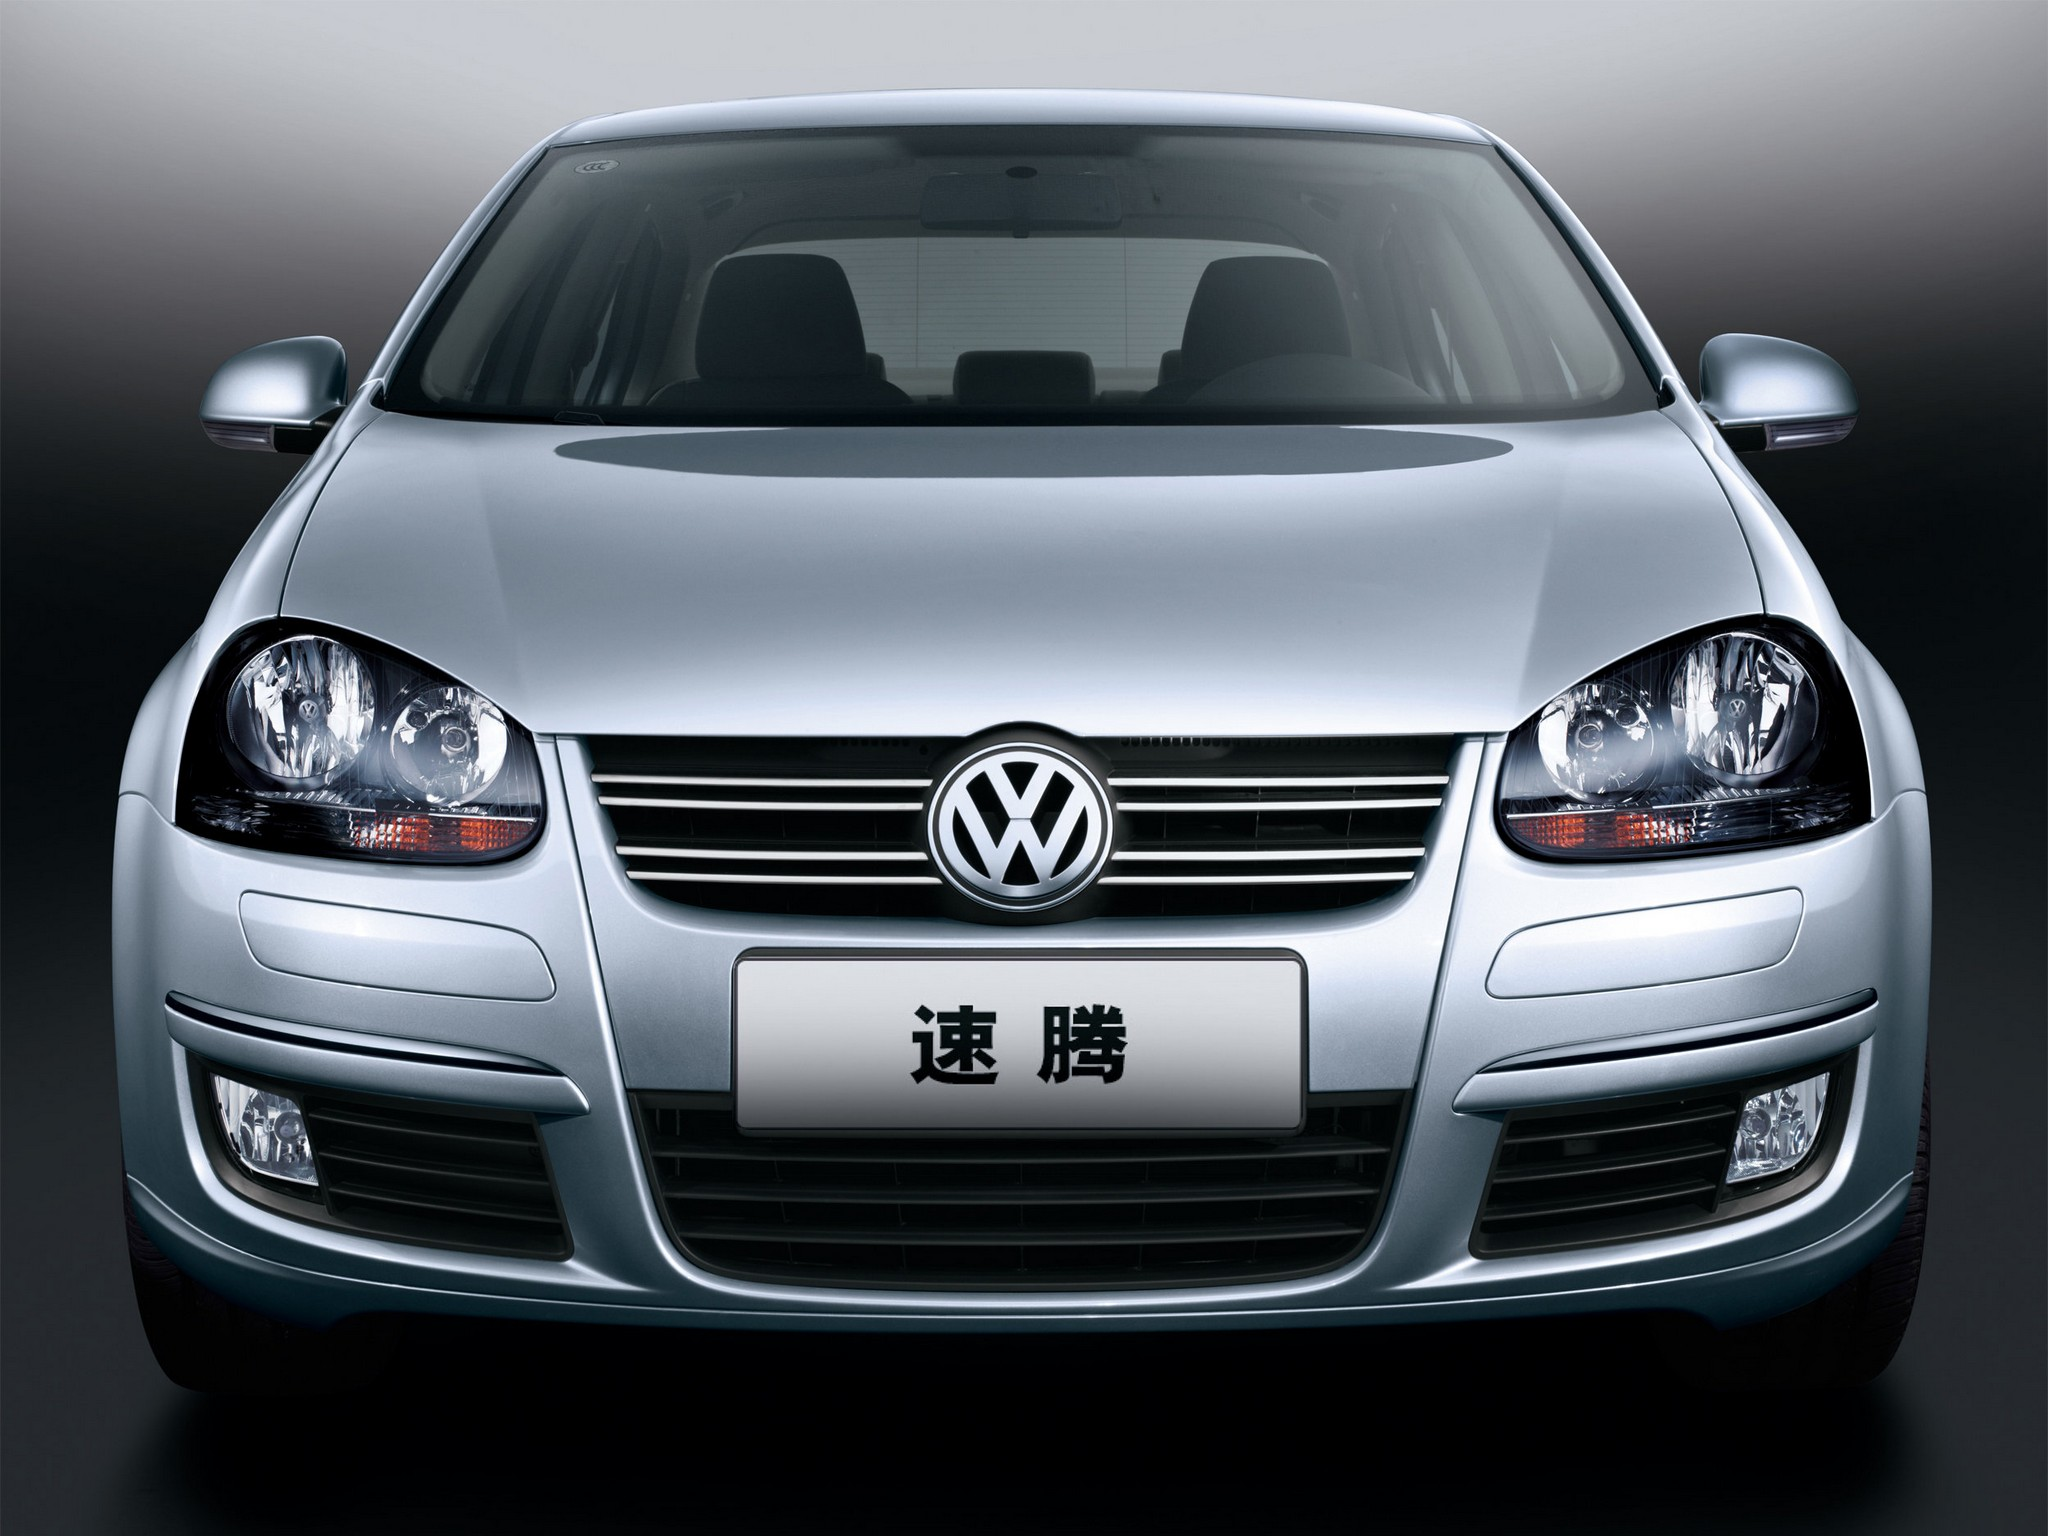 Volkswagen sagitar photo - 6